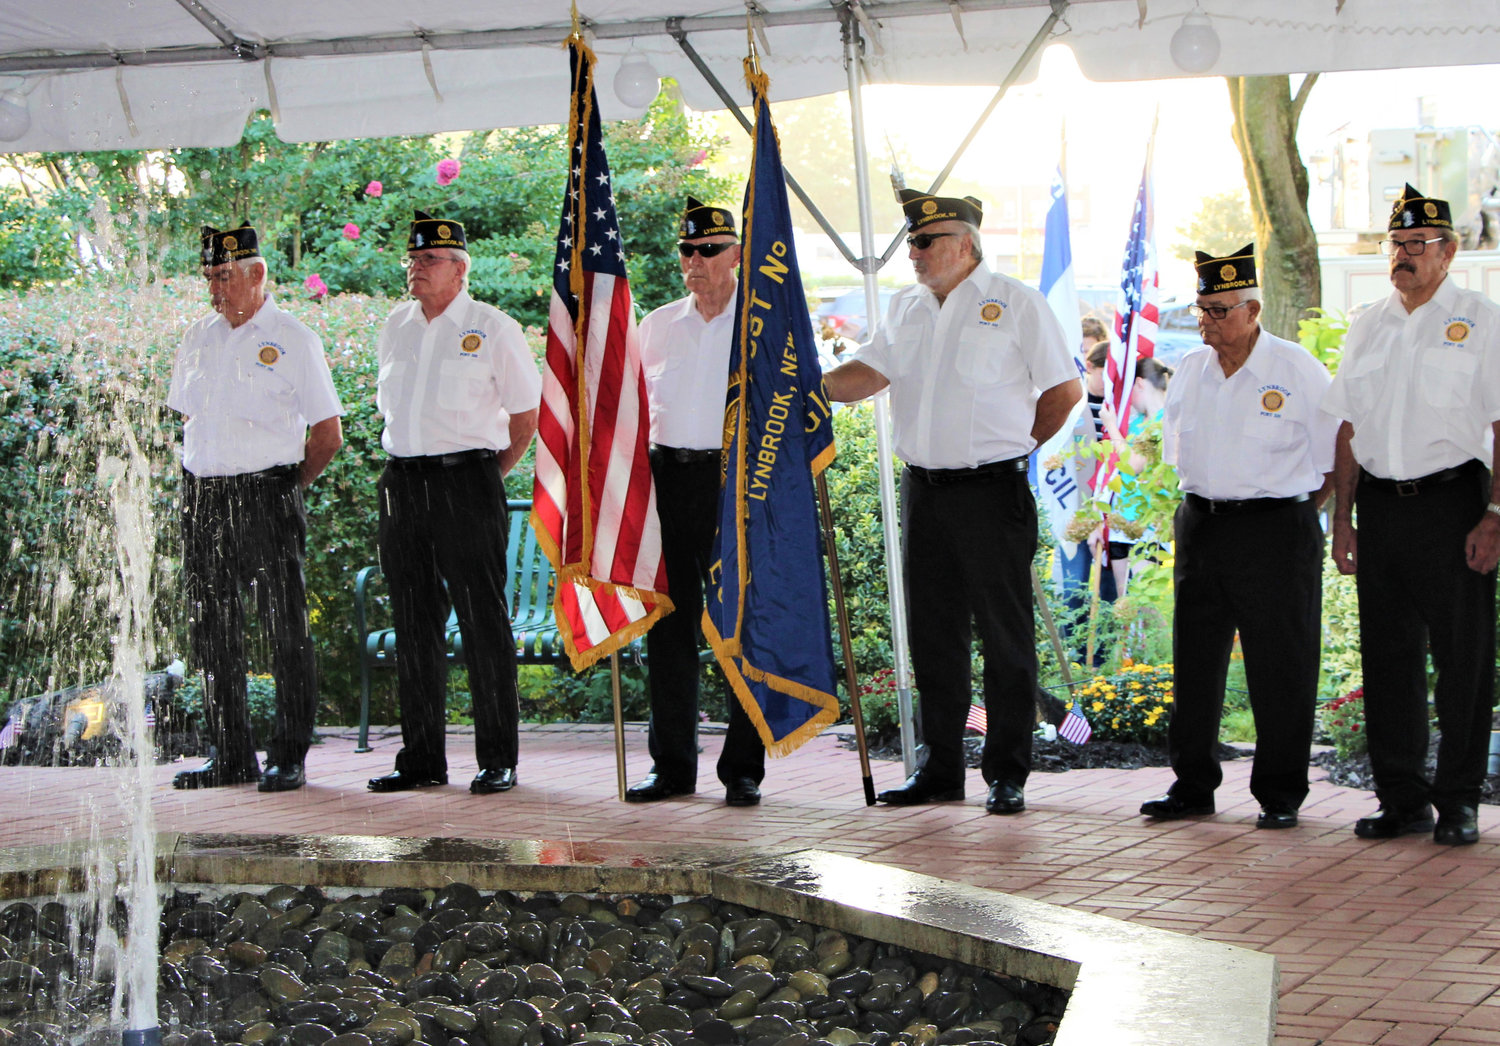 Lynbrook American Legion Post 335 presented the colors at the 9/11 Memorial Garden near Village Hall.